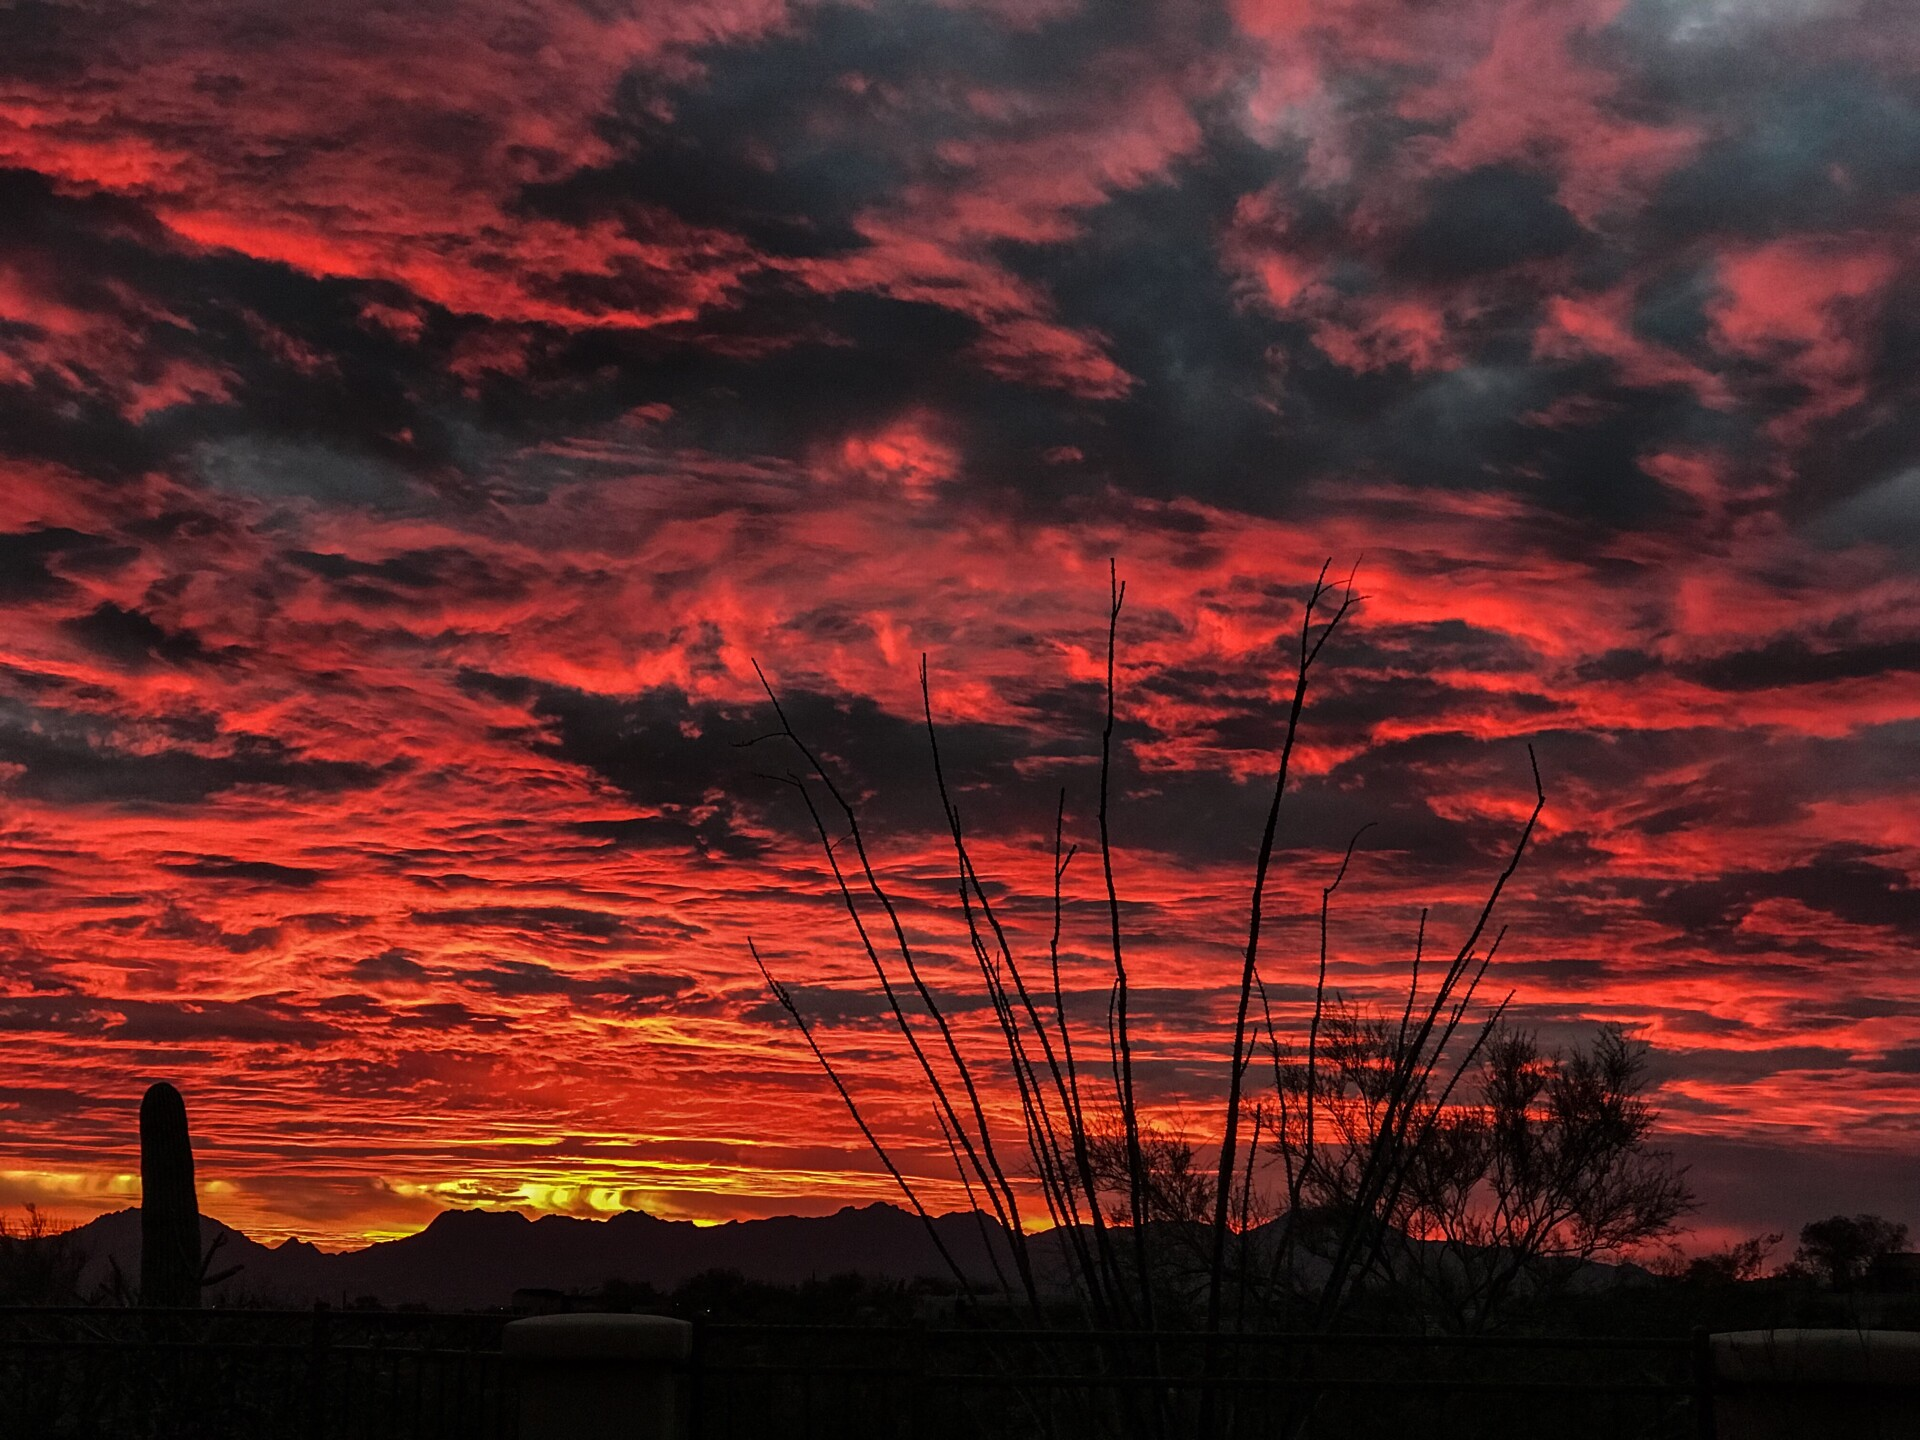 Tucson Sunsets from January 30th